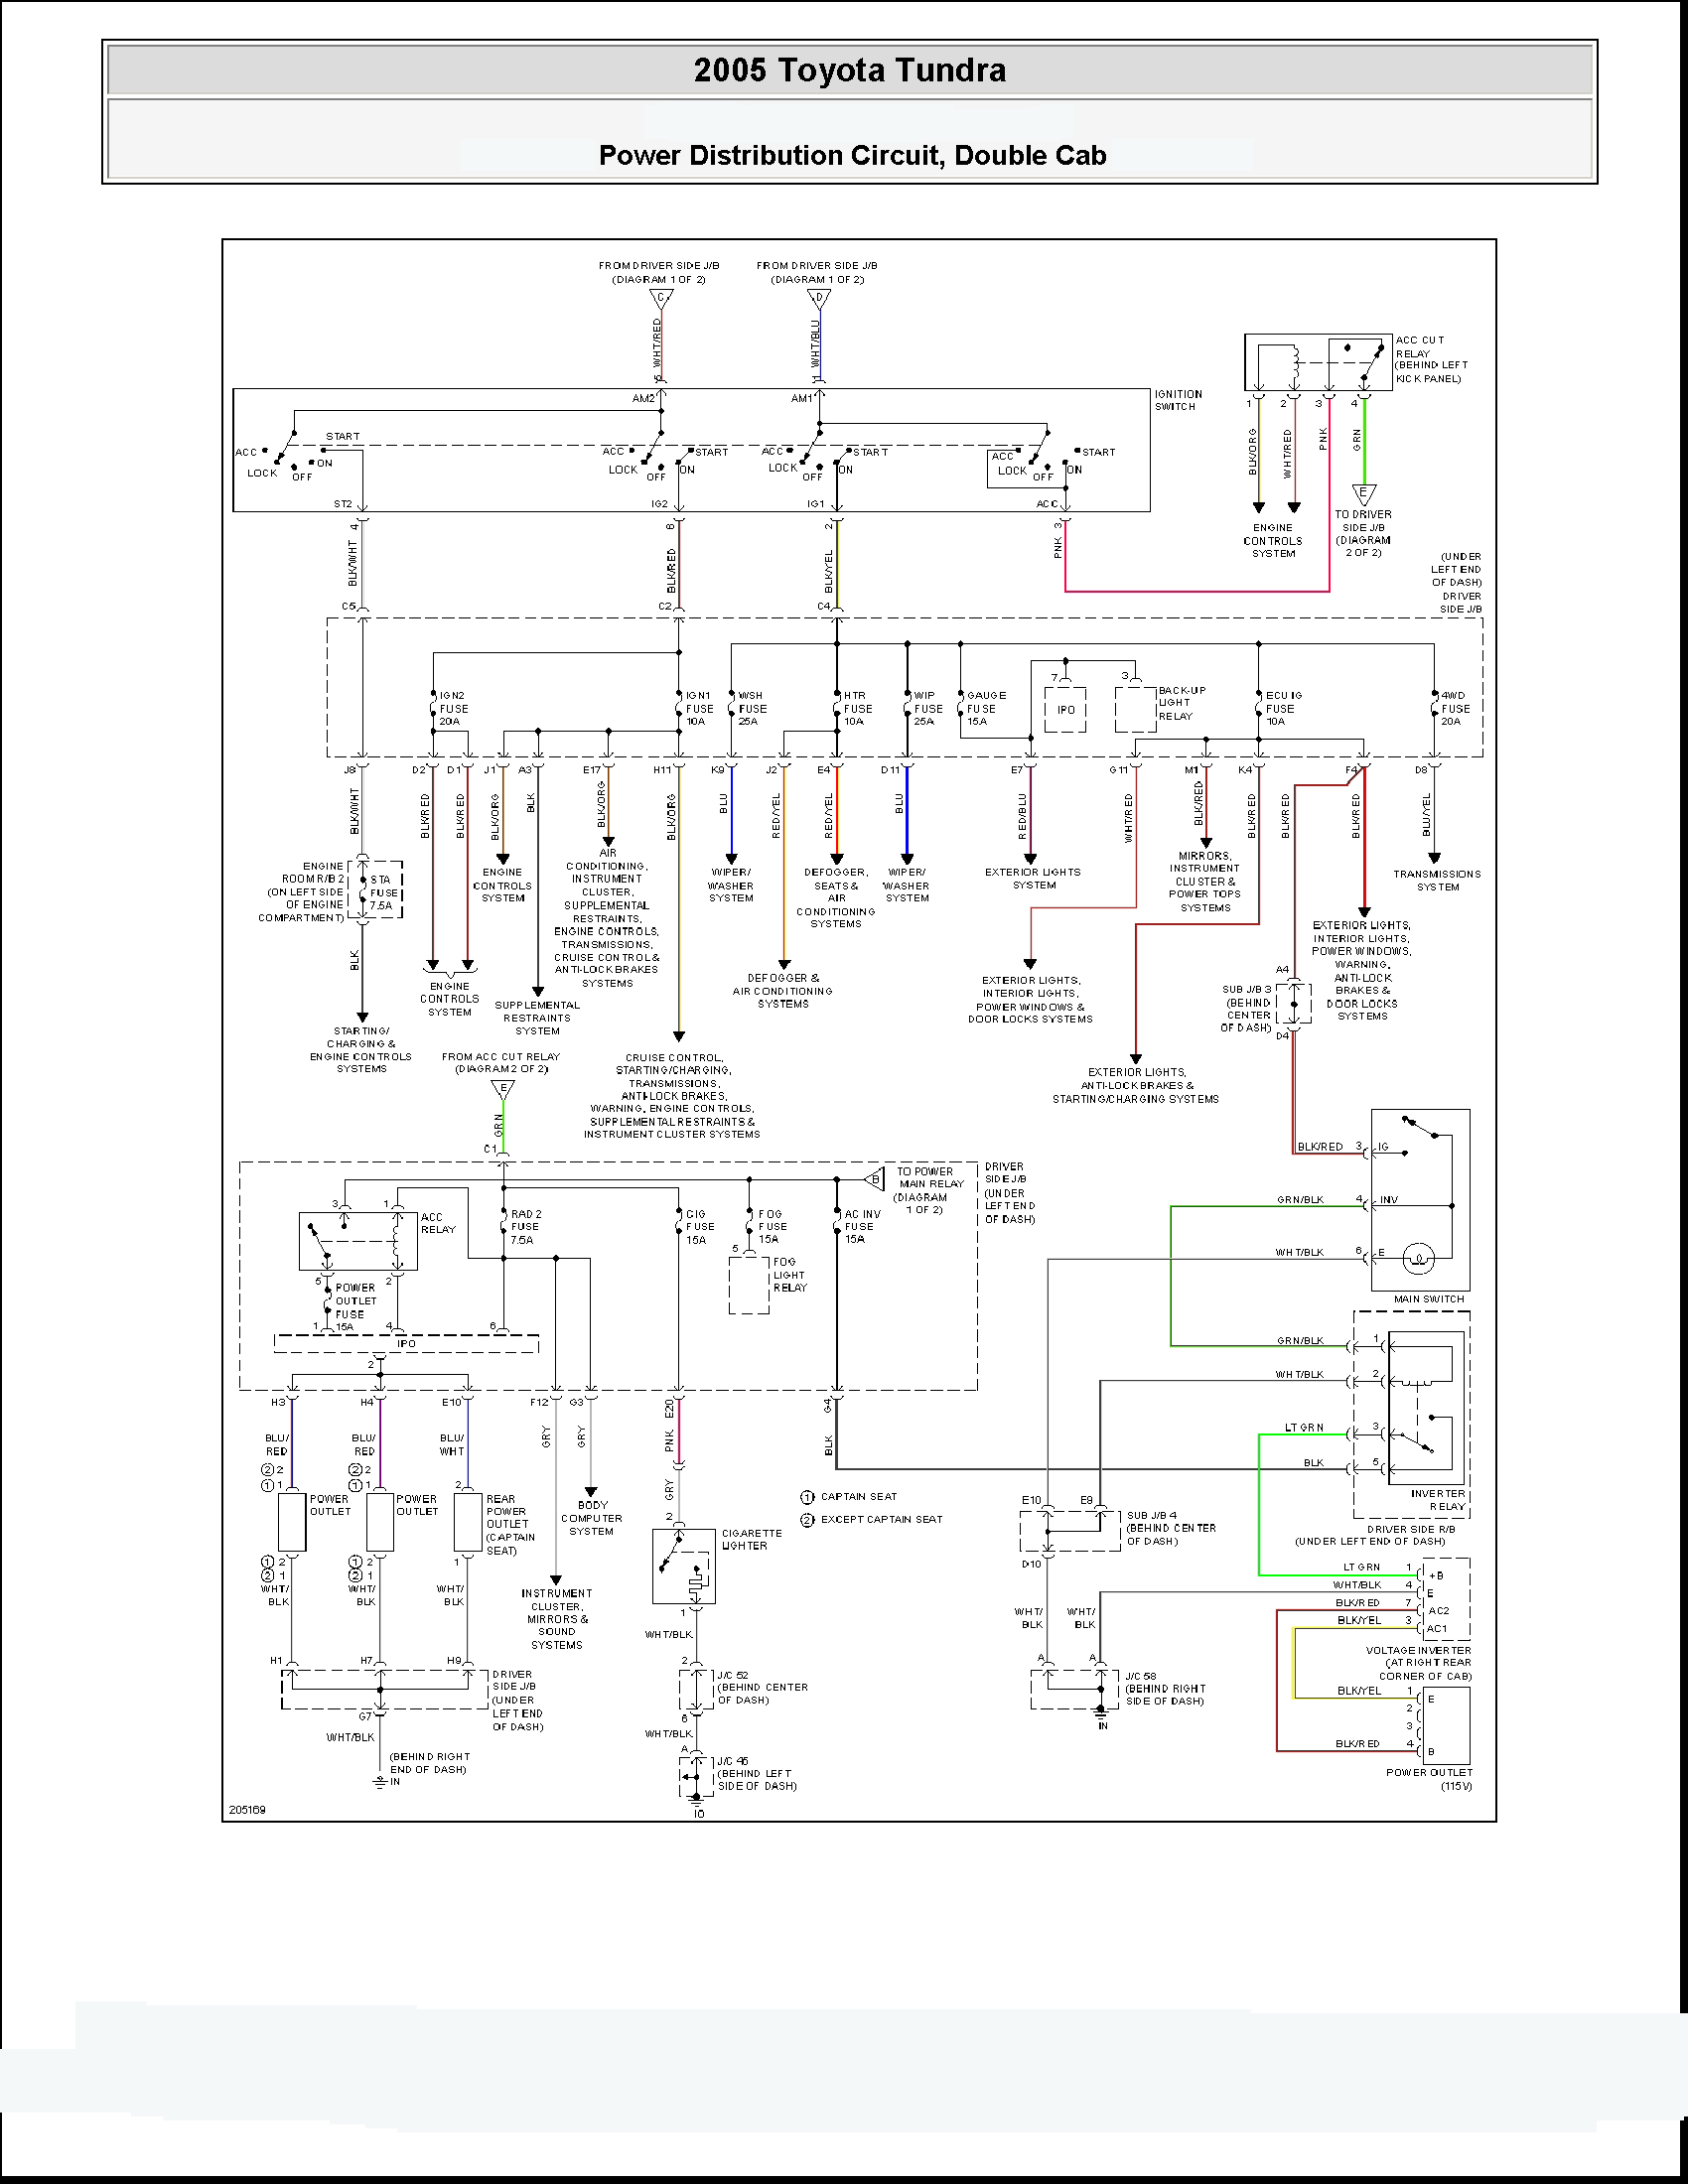 toyota tundra trailer wiring diagram images 05 tundra wiring diagram schematics and wiring diagrams